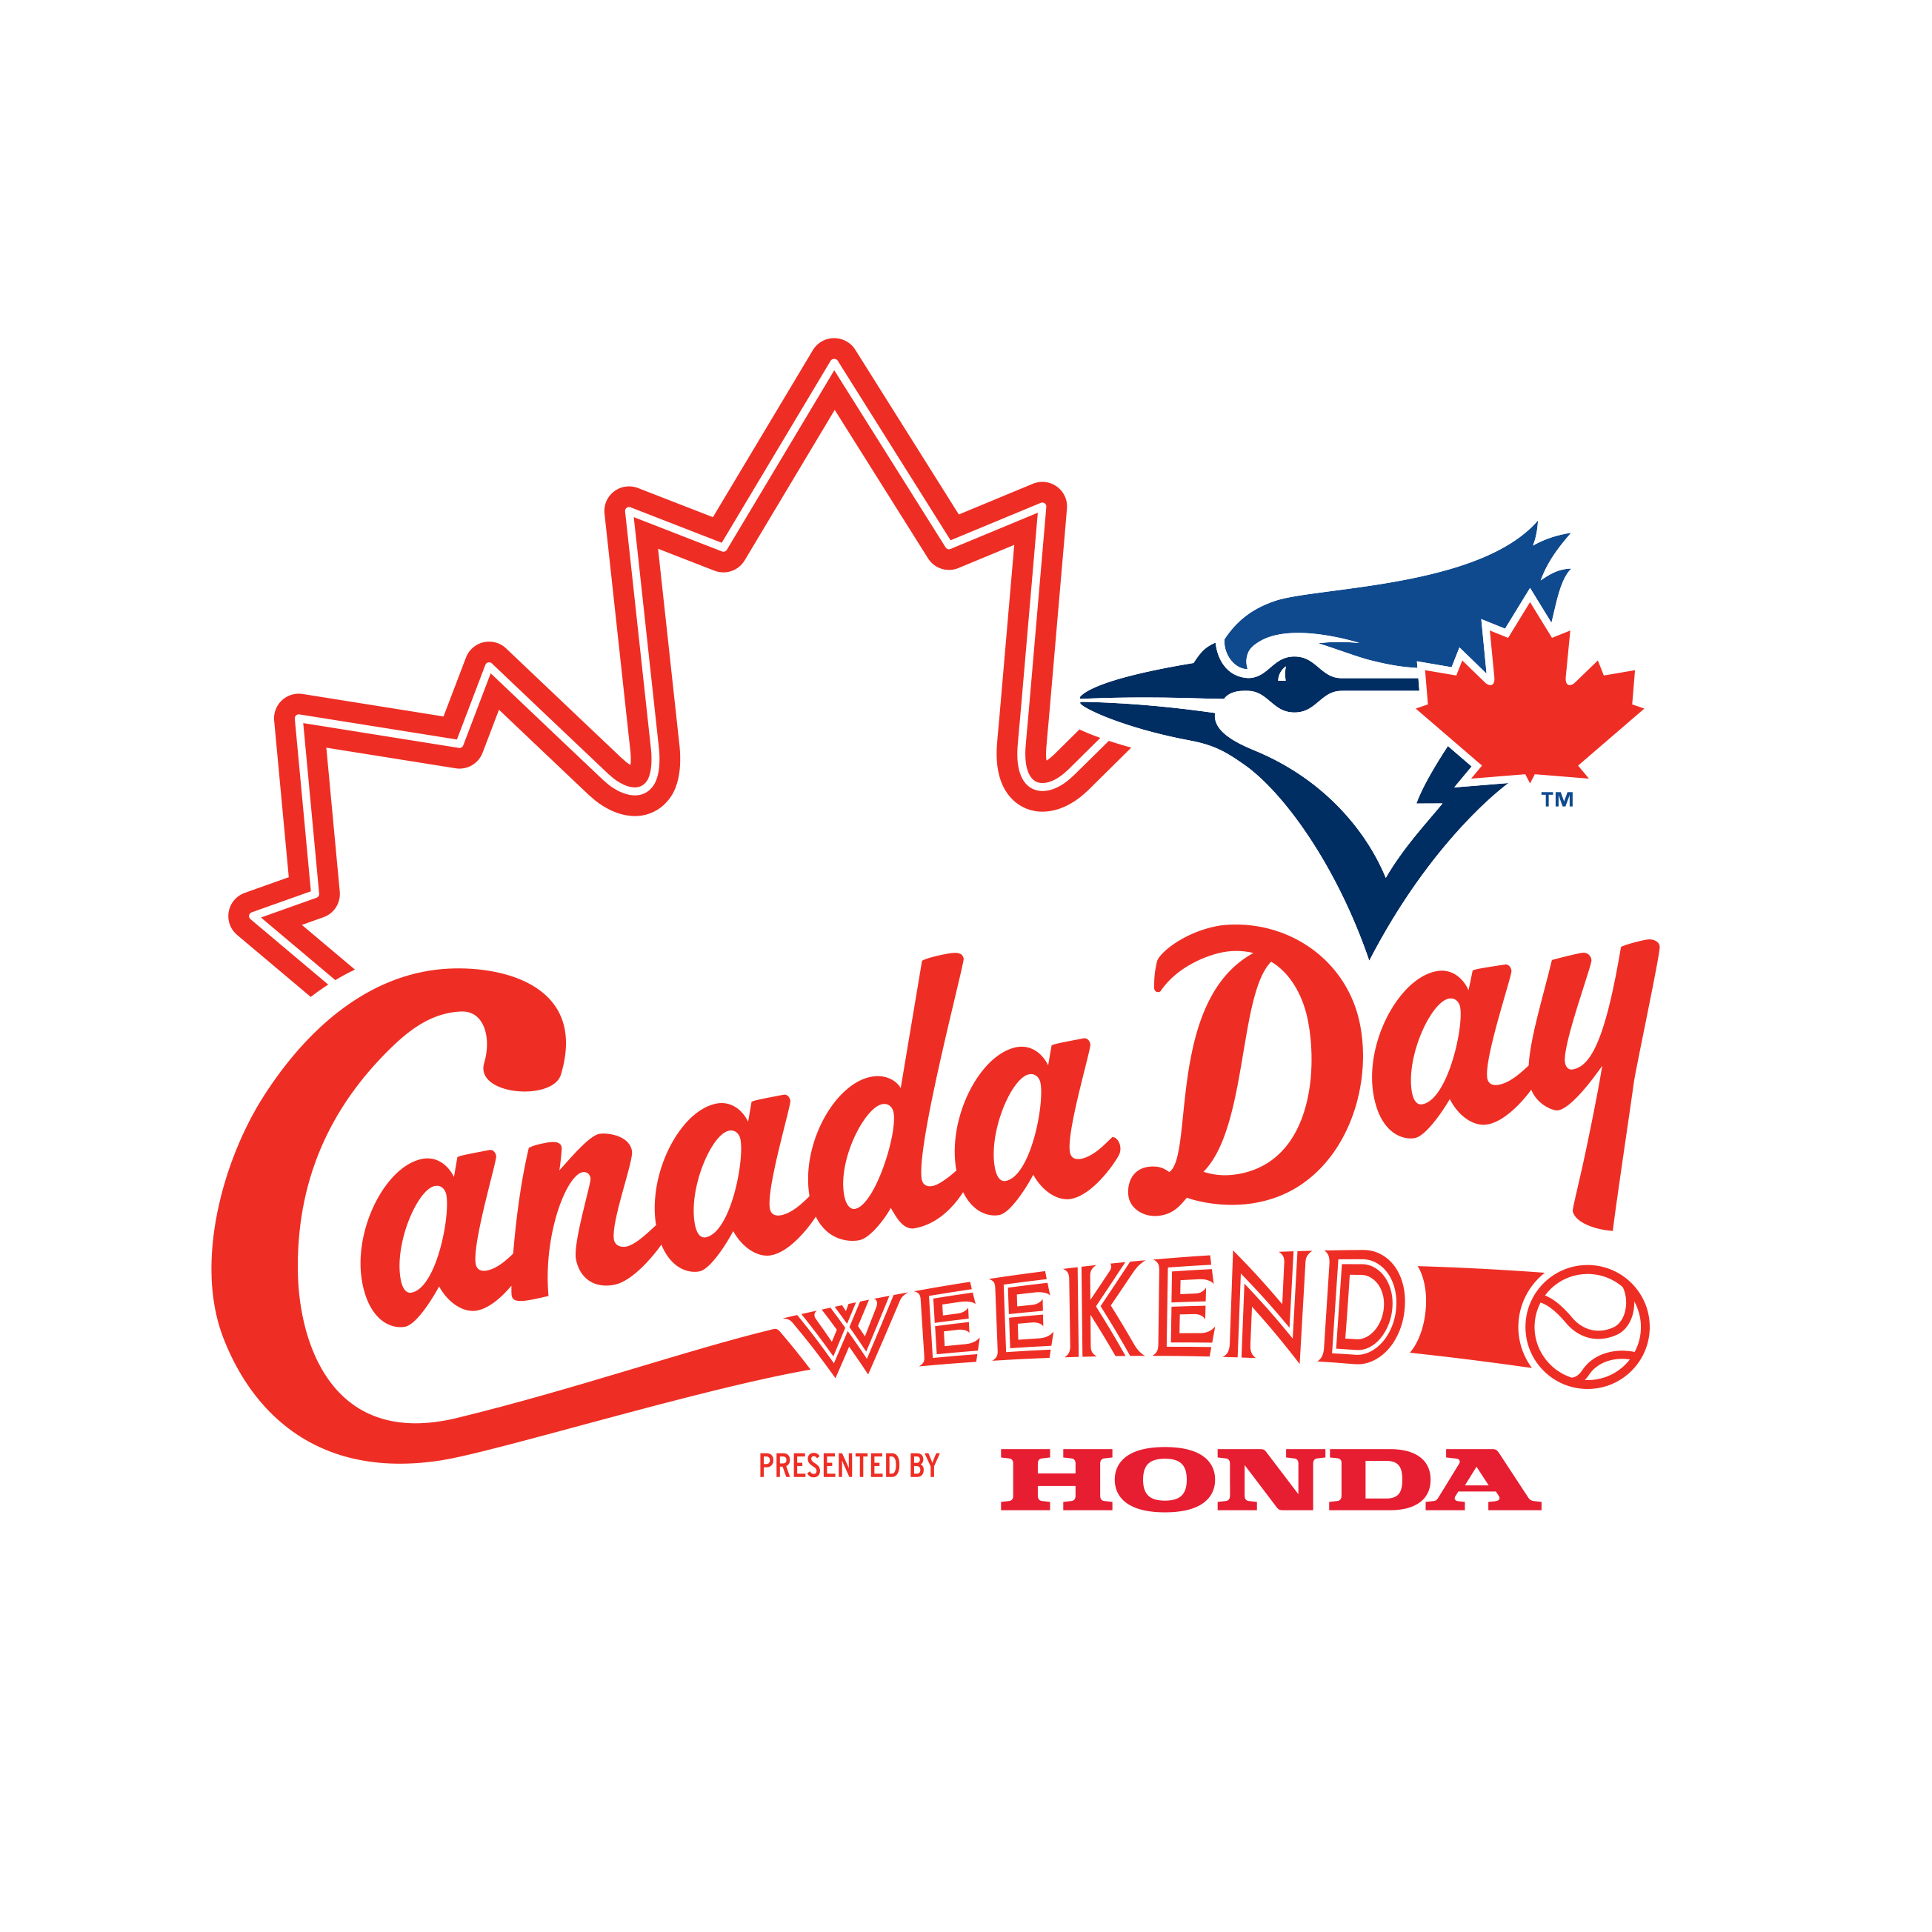 29ad298a1    Kindly note that Jr. Jays Sundays programming will not run on Canada Day  Weekend